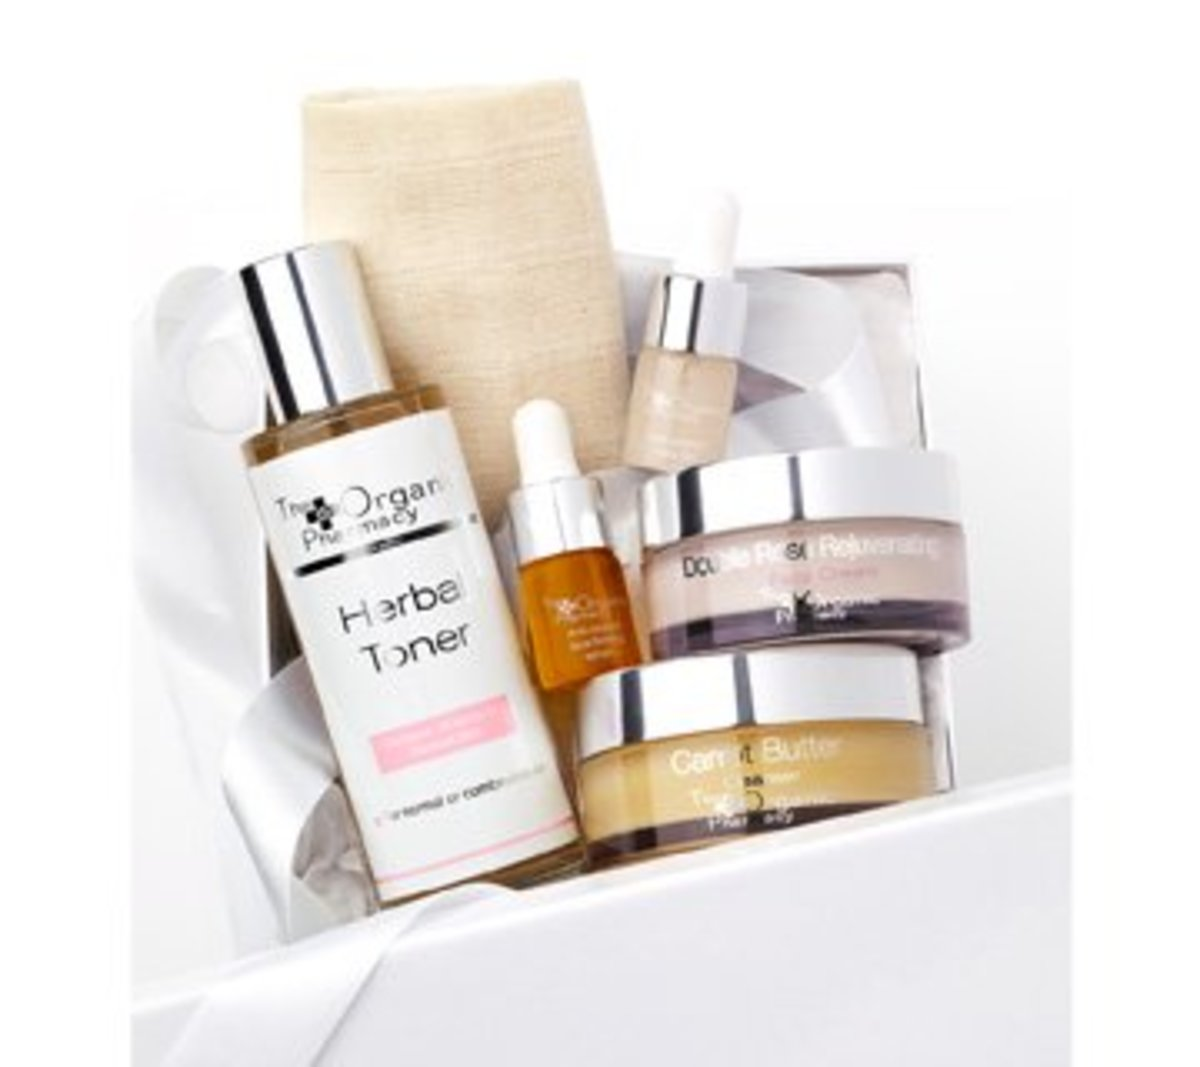 Products from The Organic Pharmacy http://www.theorganicpharmacy.com